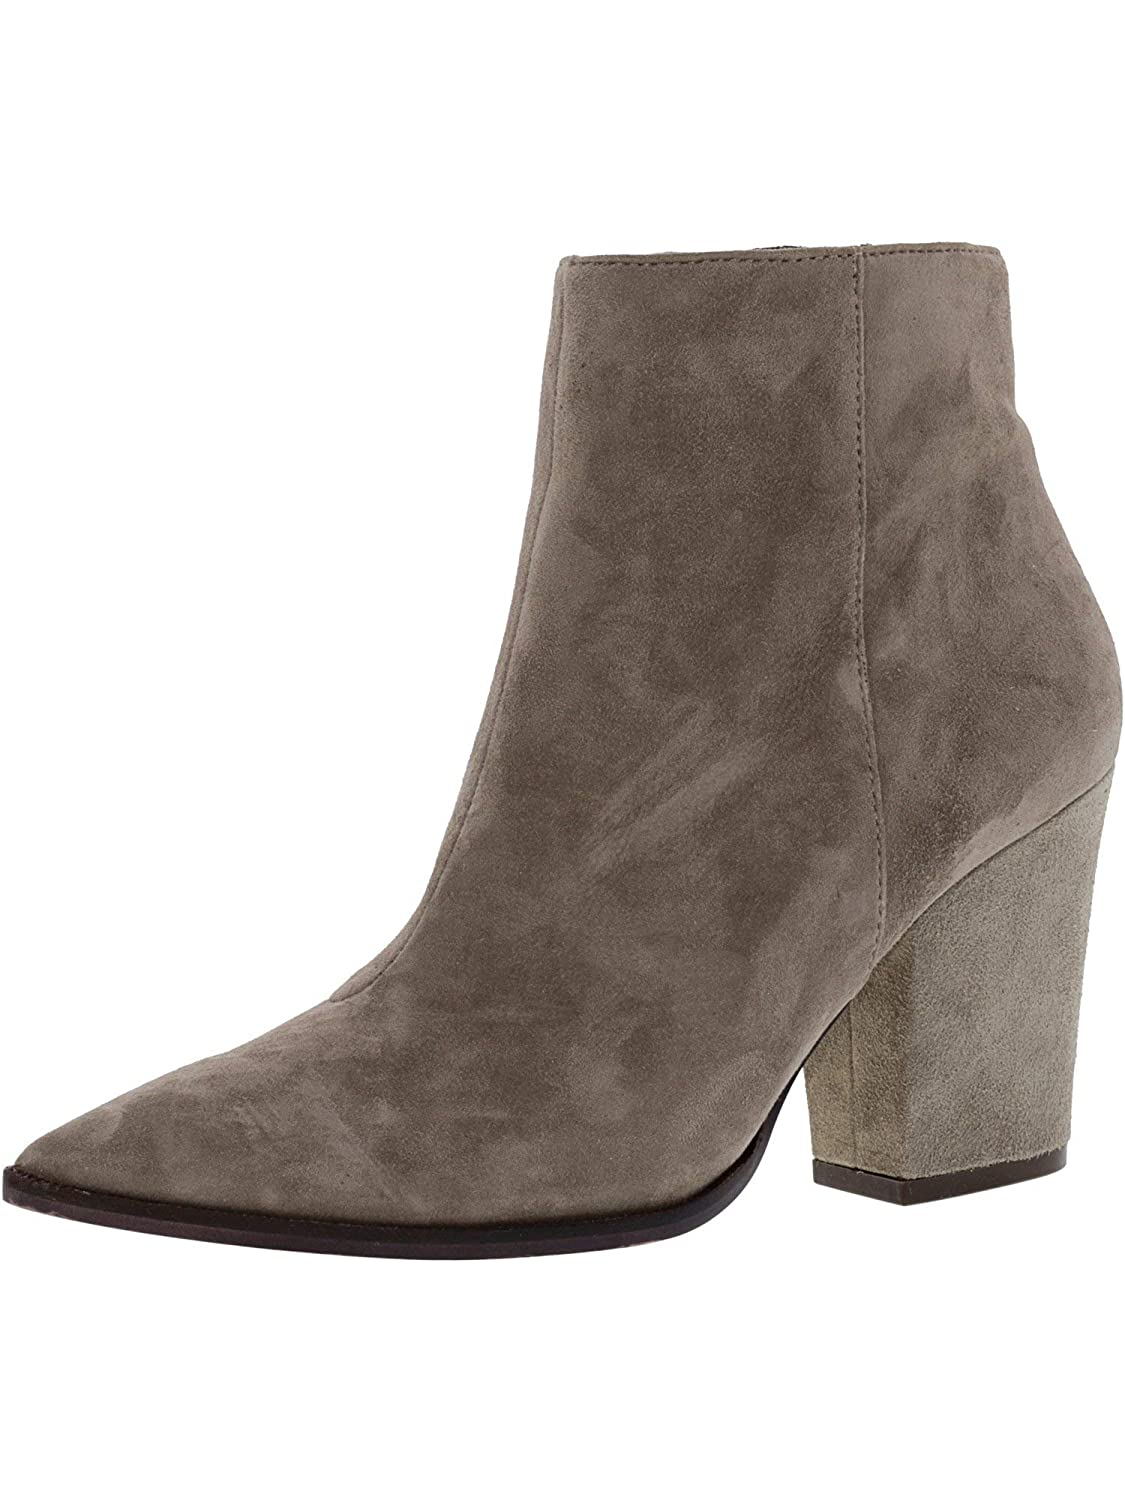 07e10cf752a Steve Madden Women s Marissa Taupe Boot  Amazon.ca  Shoes   Handbags